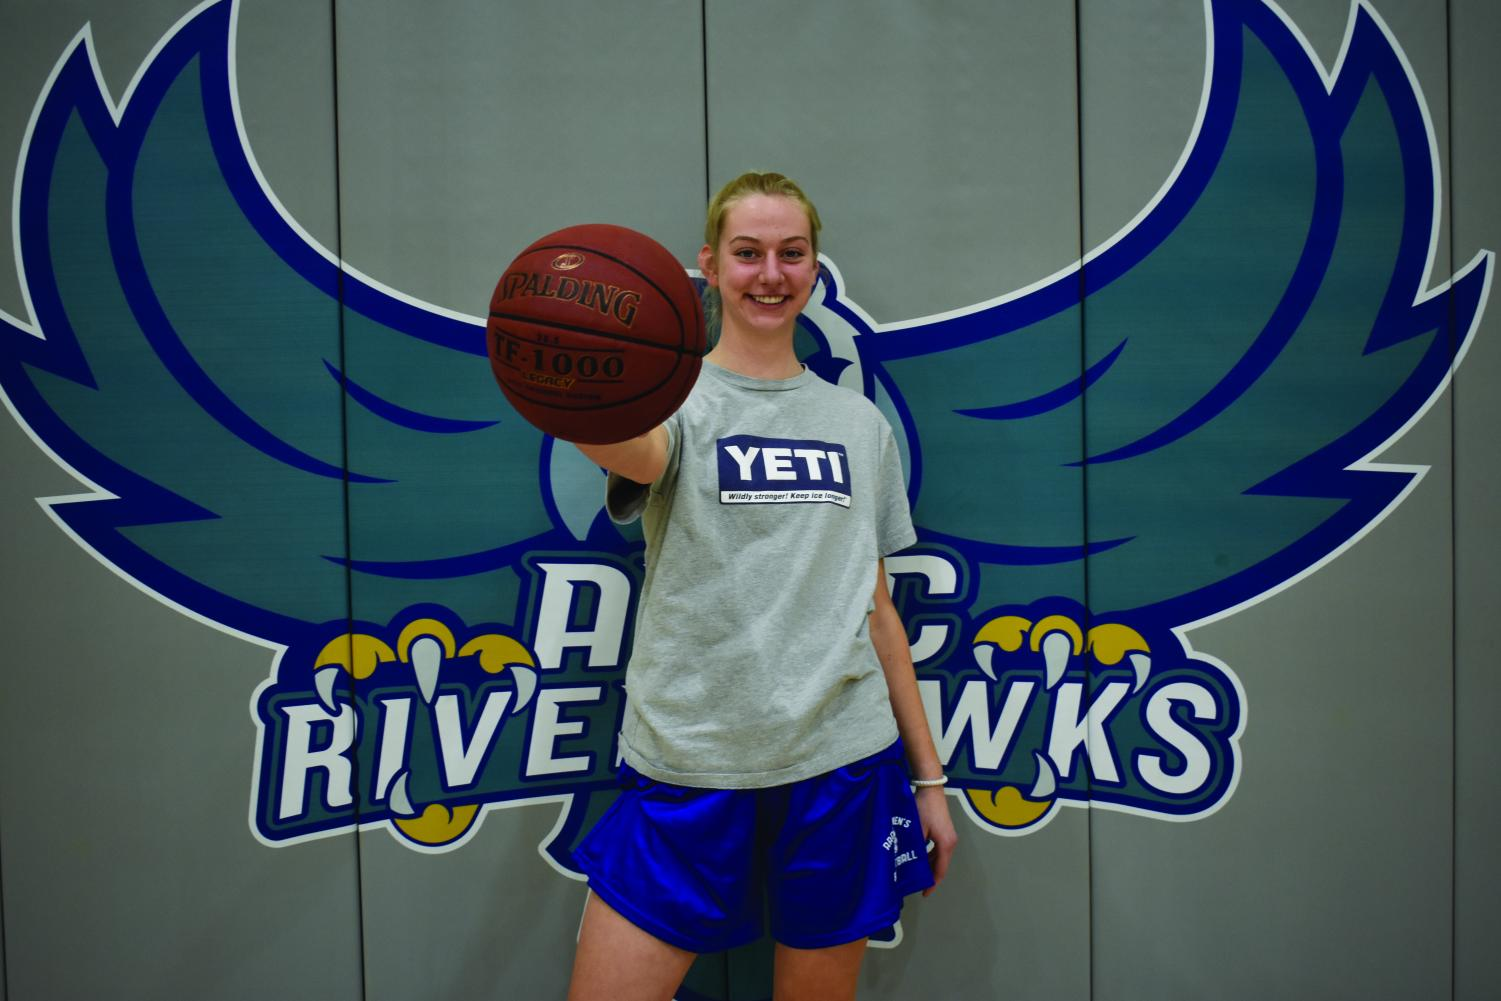 Women's Basketball center Sarah Healy won MVP in the Division III Region Tournament  and earned a 4.0 GPA this season.